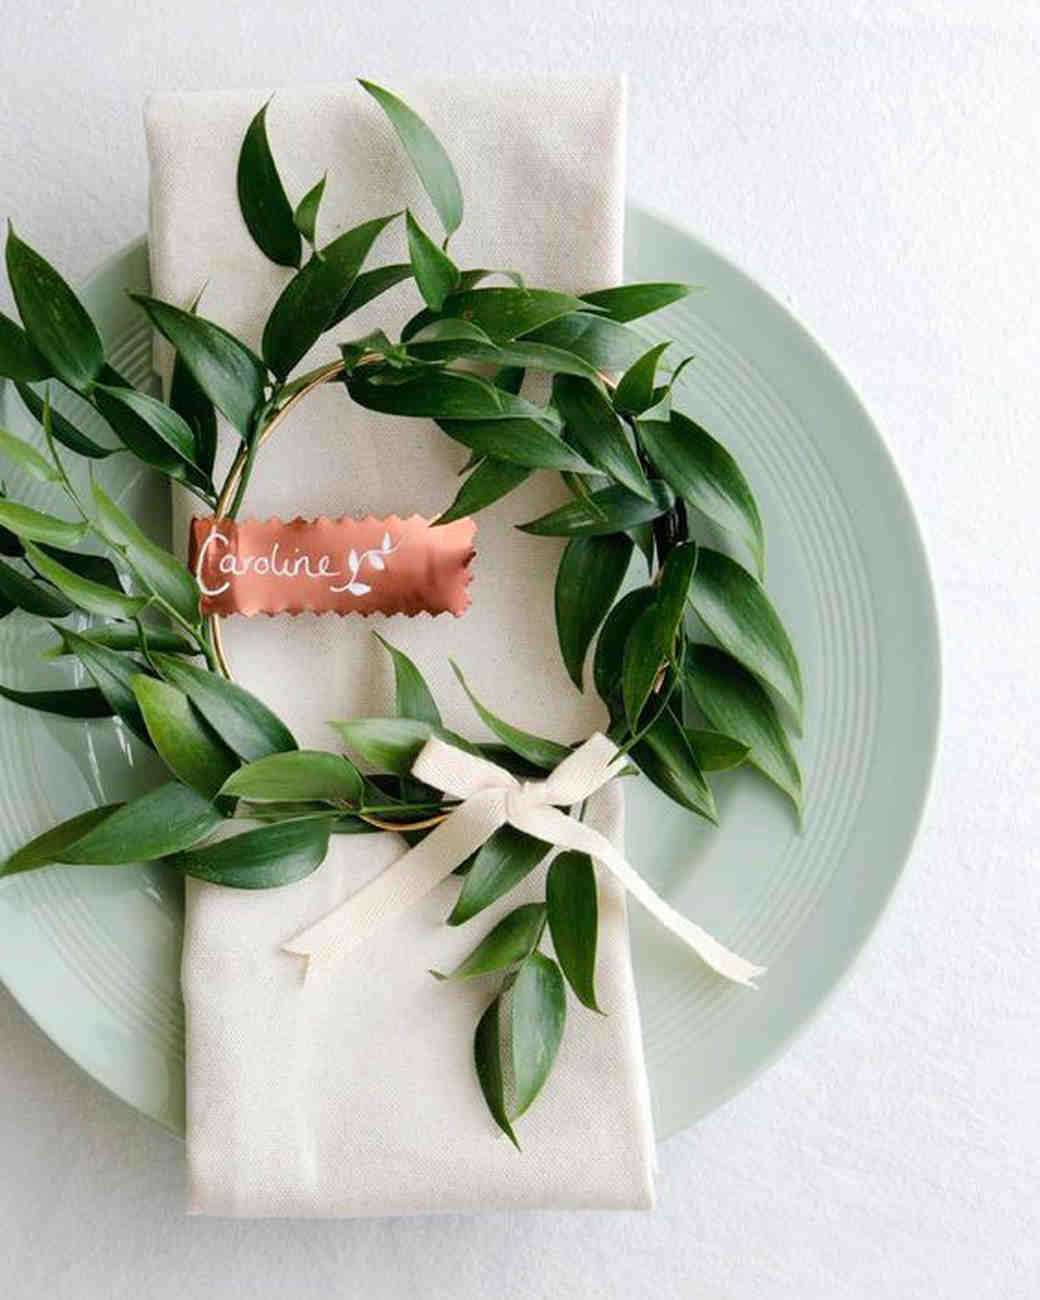 wedding wreath with copper name tag on top of plate